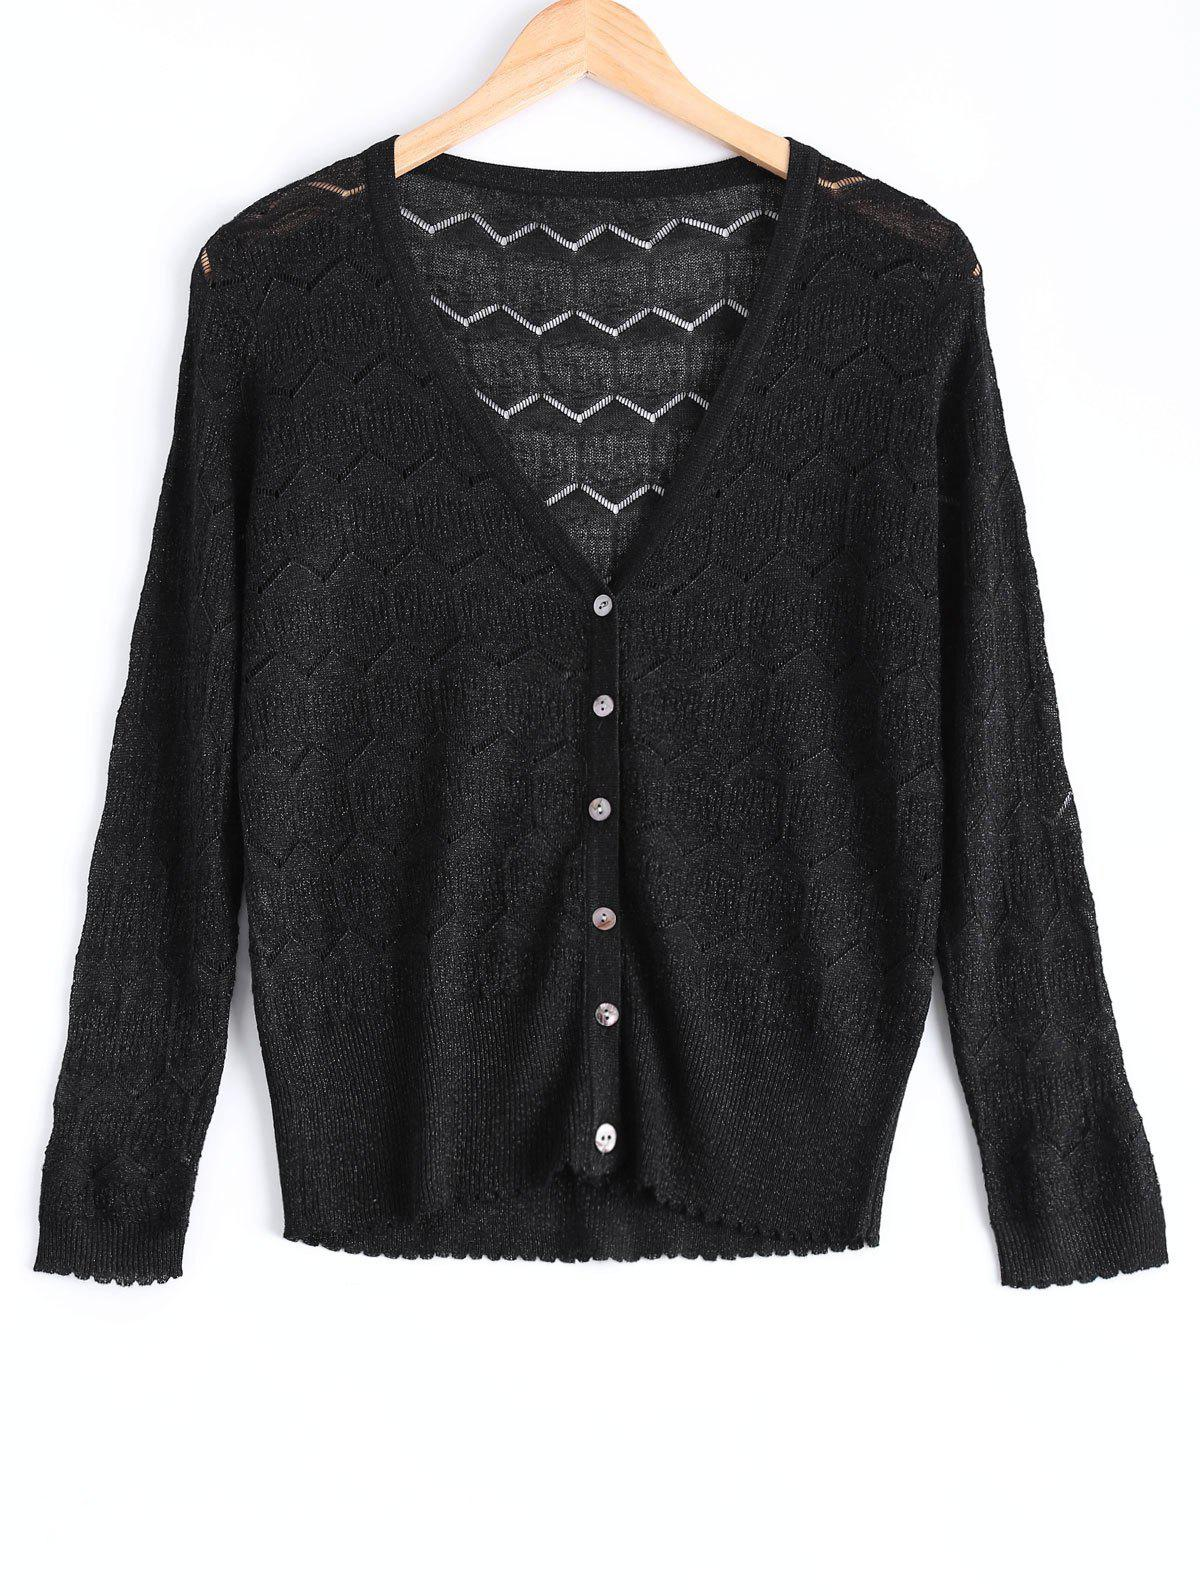 Casual Zig Zag Textured Knitted Cardigan For Women - BLACK ONE SIZE